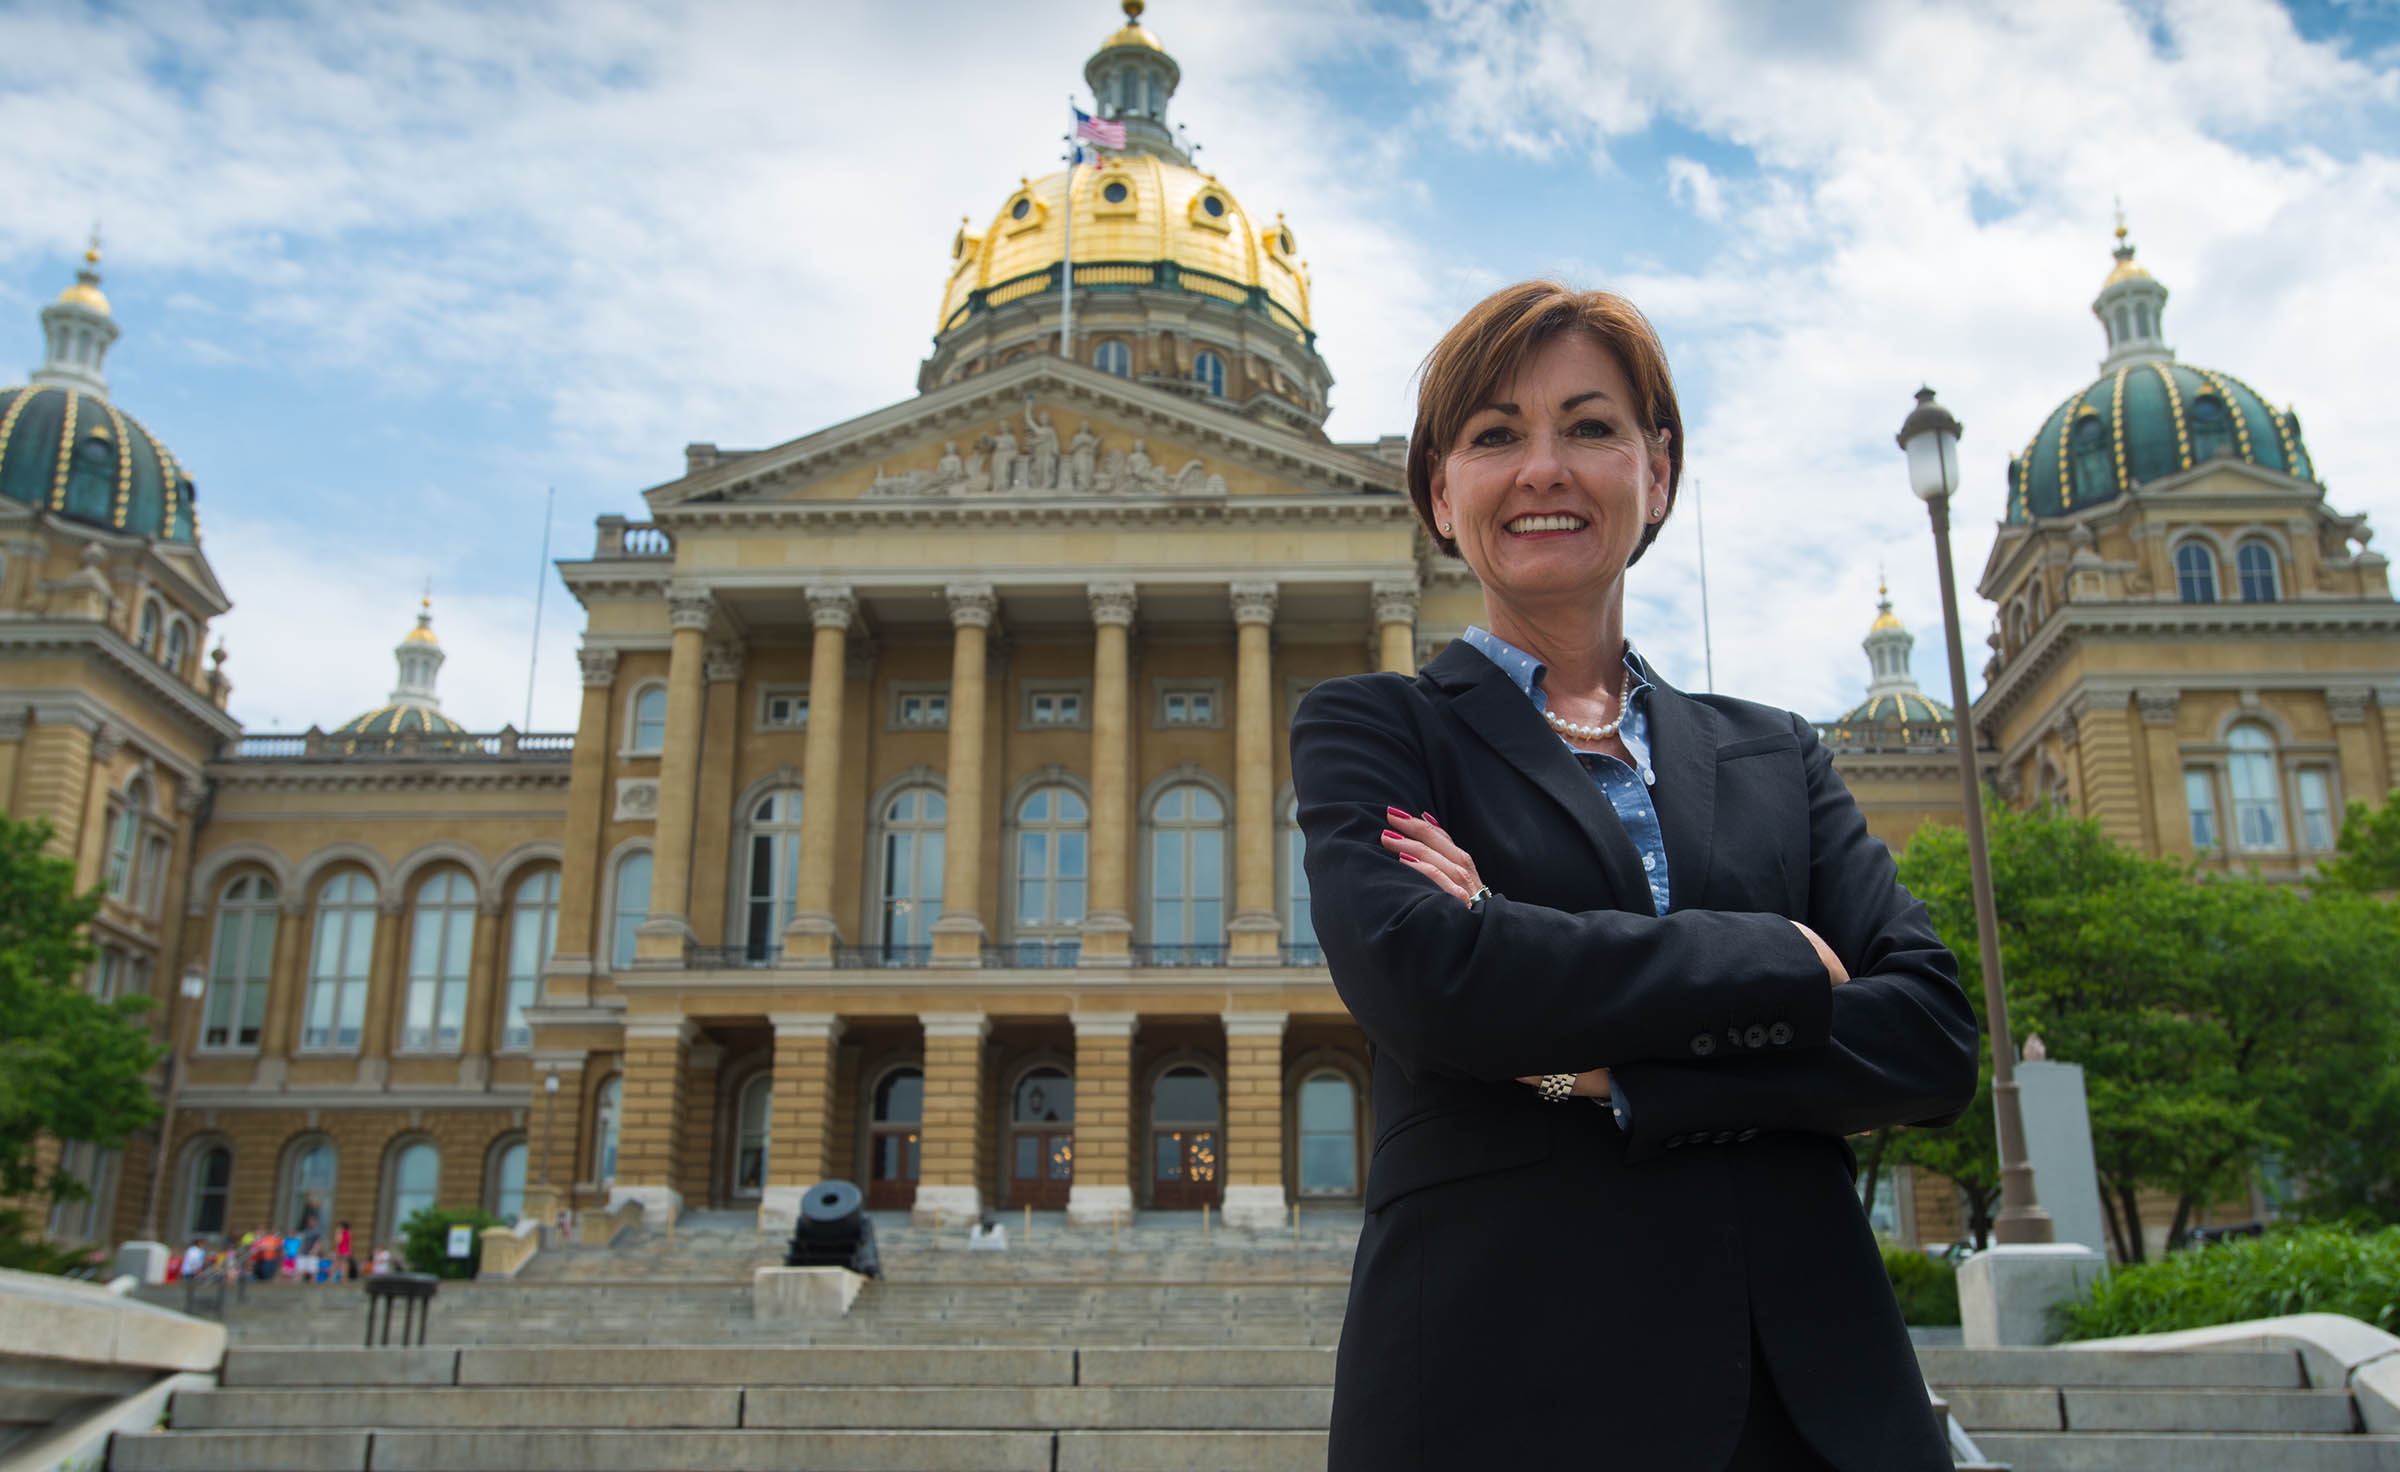 Governor Reynolds poses in front of the state capitol b